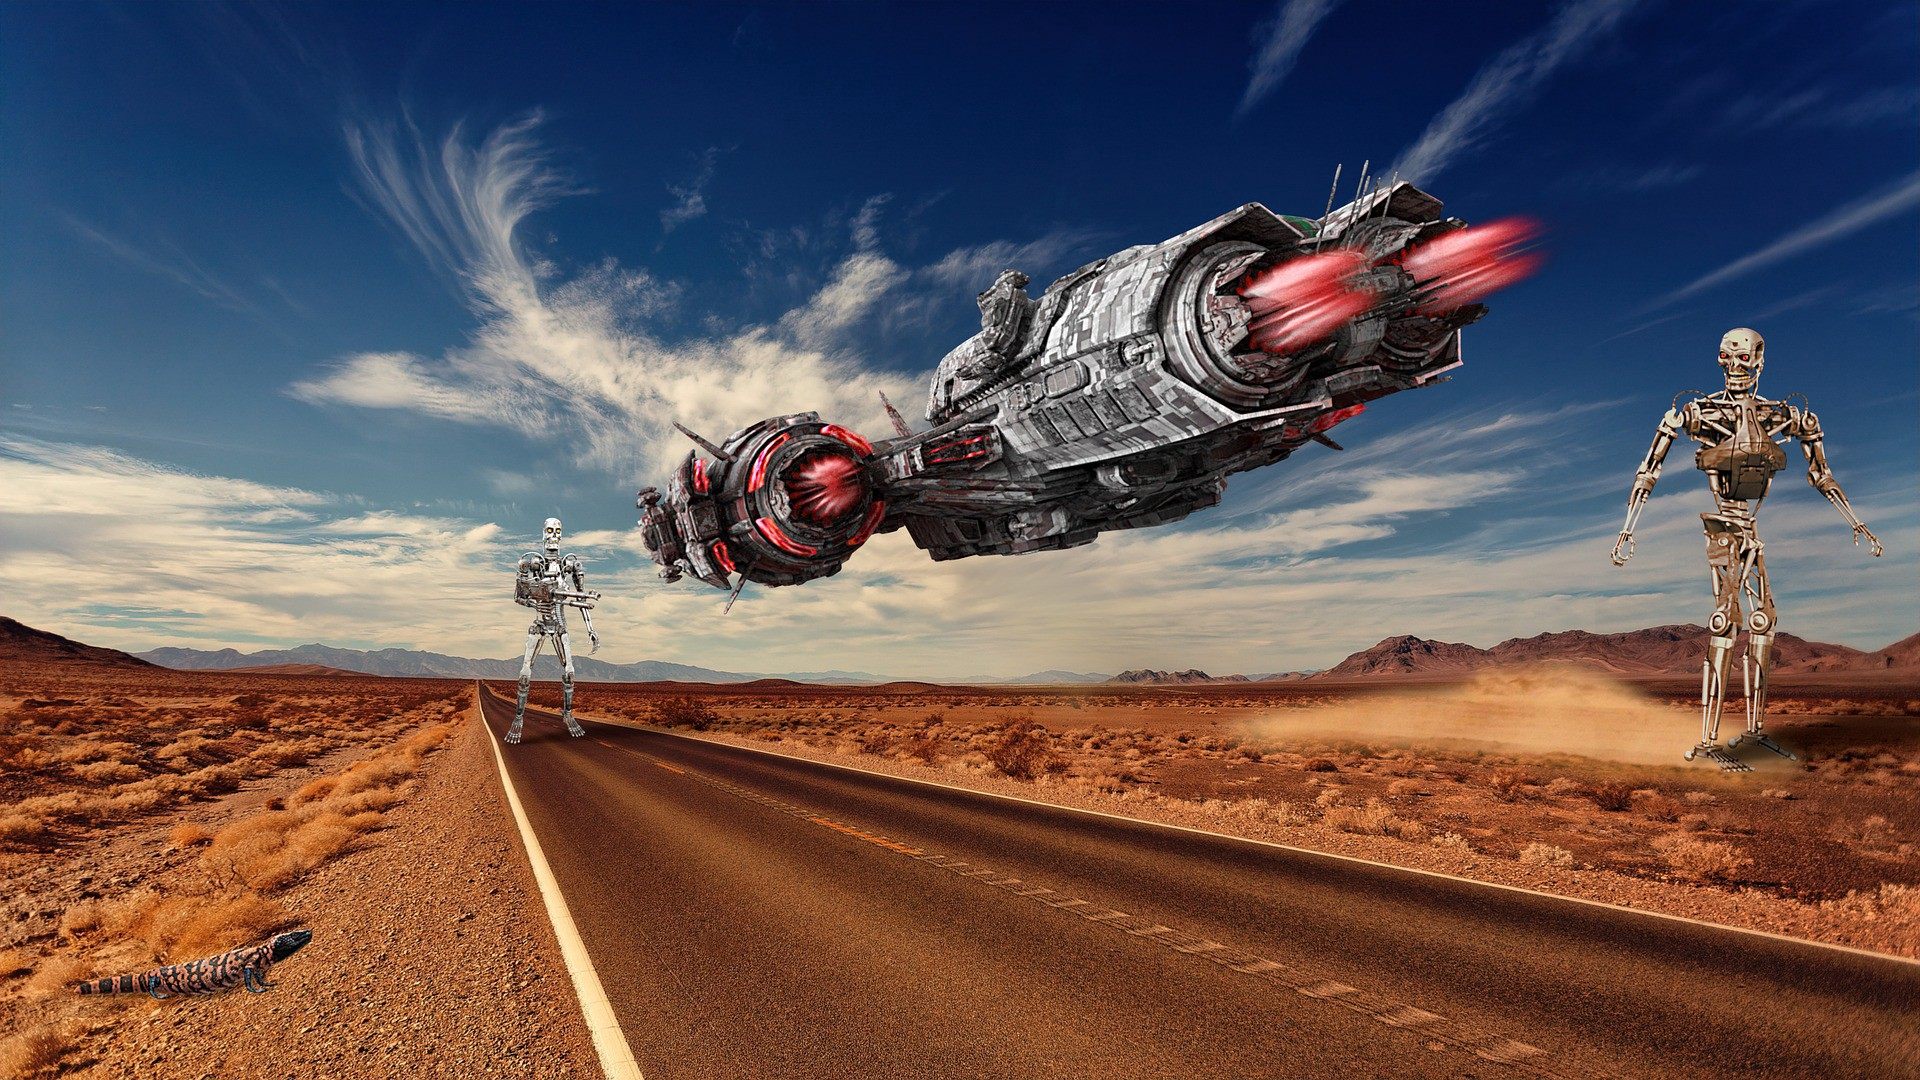 image of an alien ship hovering over a prairie road with two large robots walking nearby